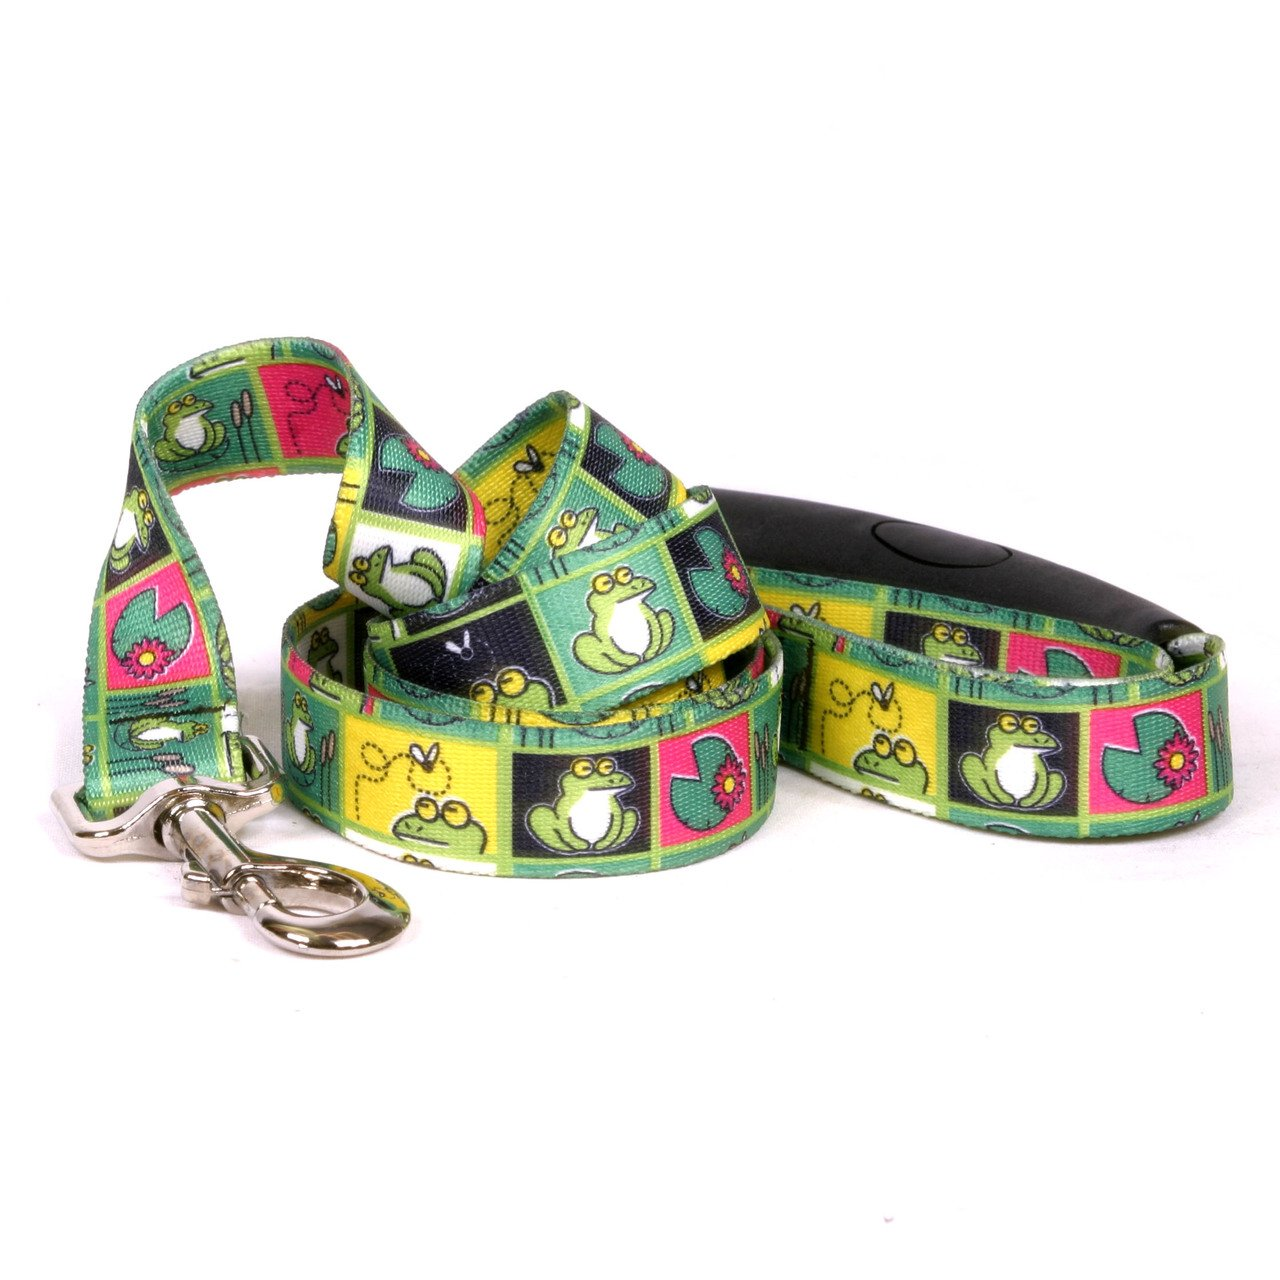 Yellow Dog Design Frogs Ez-Grip Dog Leash with Comfort Handle 3/4'' Wide and 5' (60'') Long, Small/Medium by Yellow Dog Design